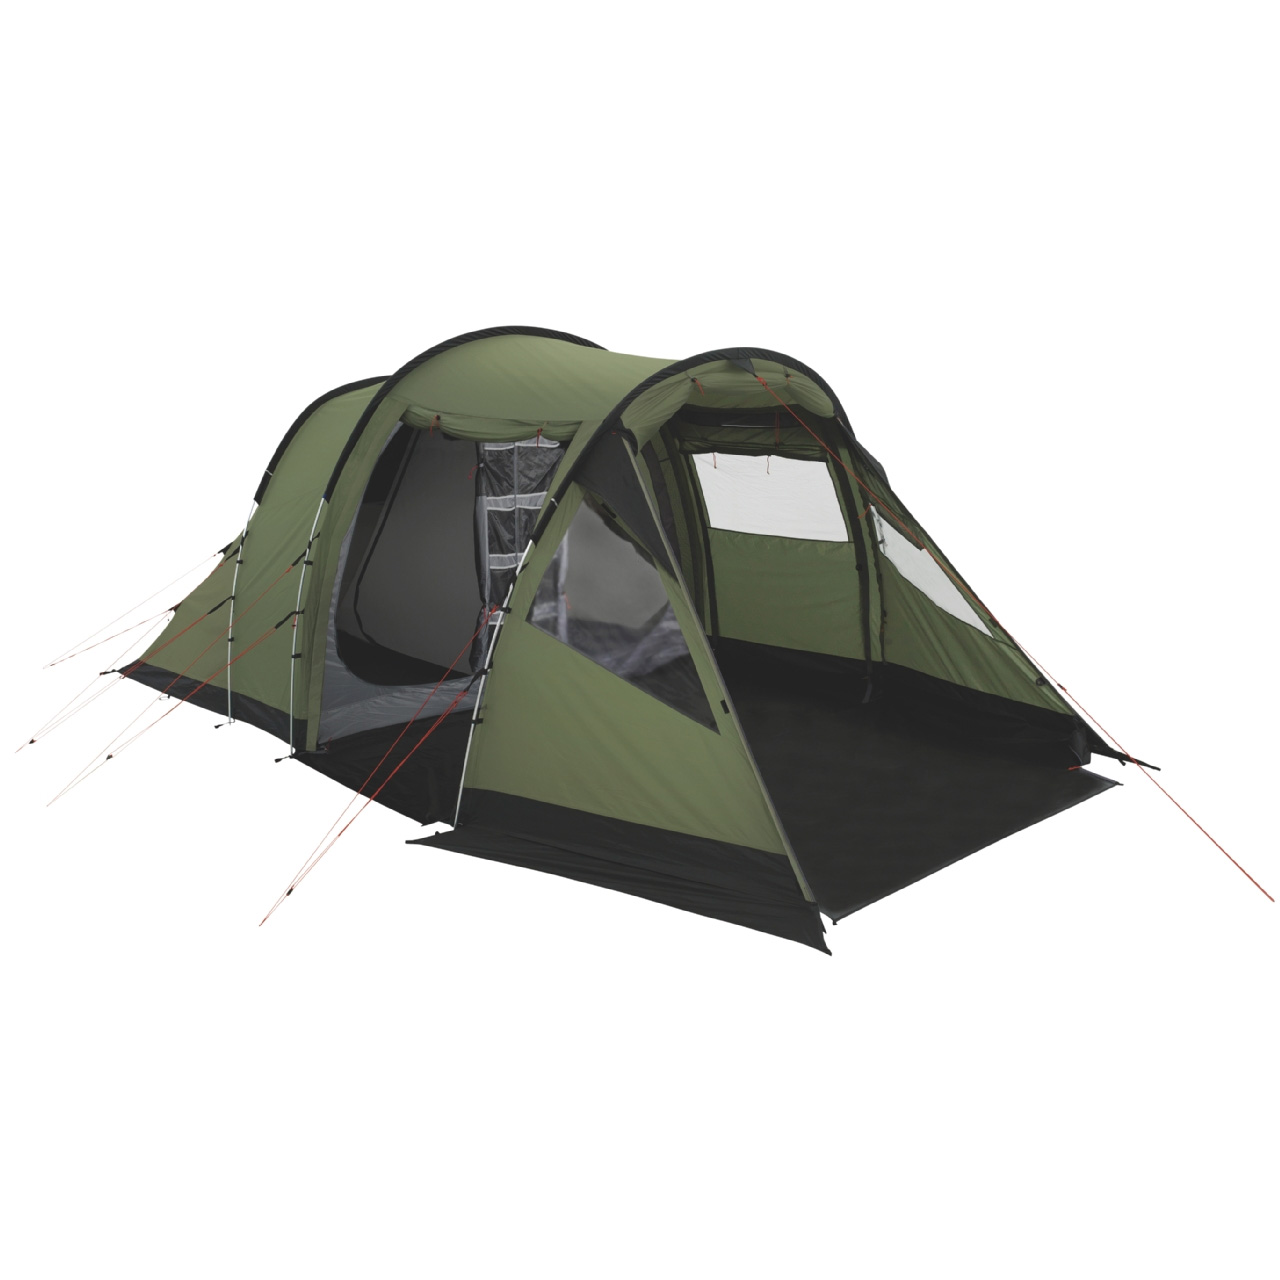 Buy Robens Double Dreamer from Outnorth